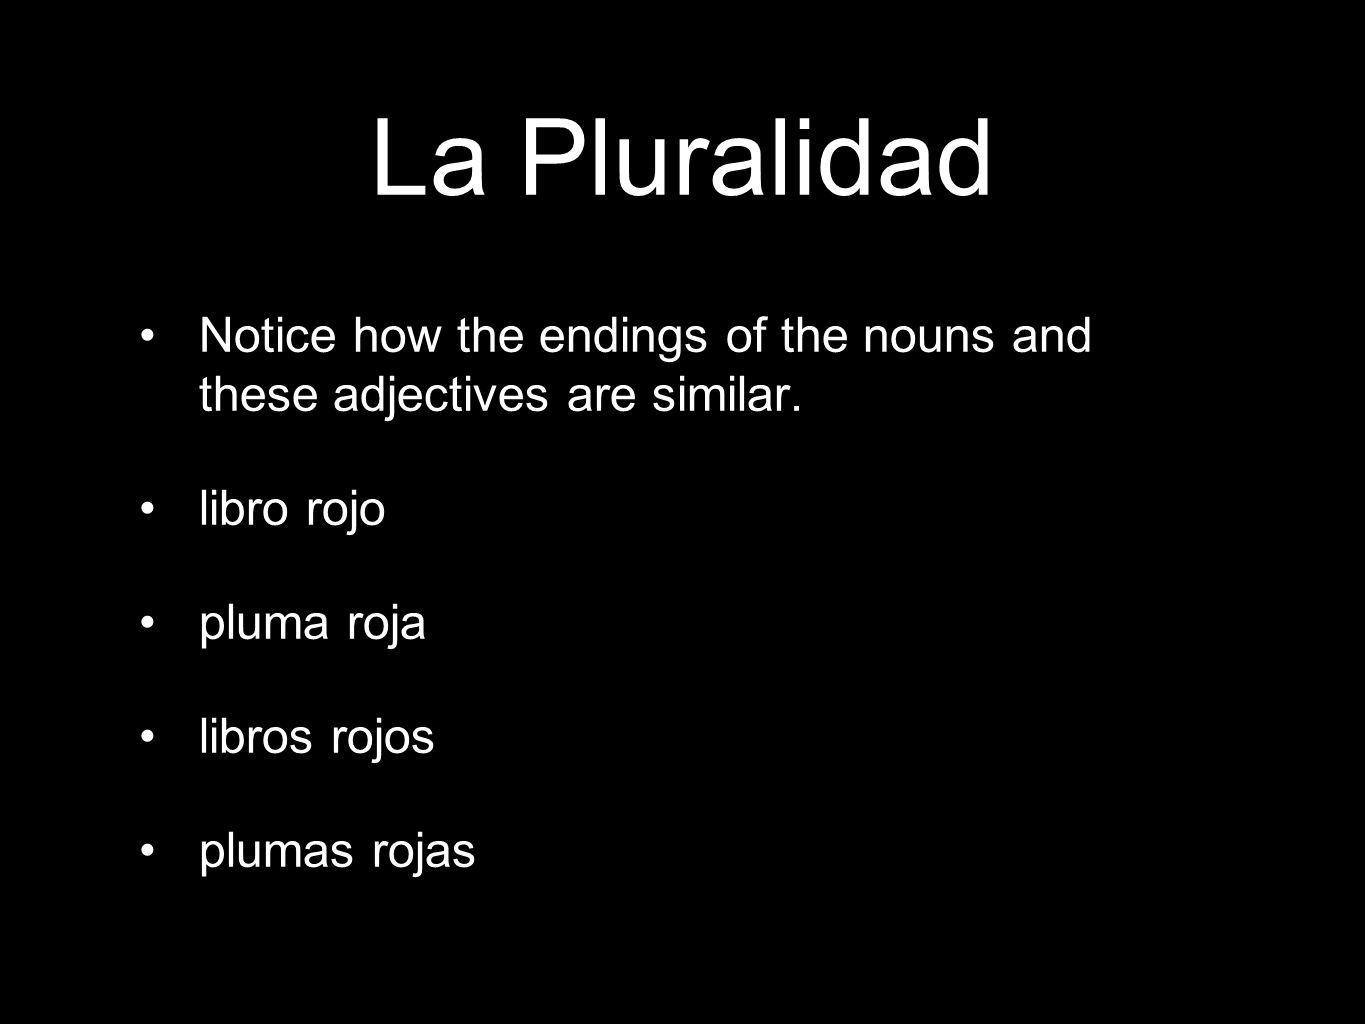 La Pluralidad Notice how the endings of the nouns and these adjectives are similar.